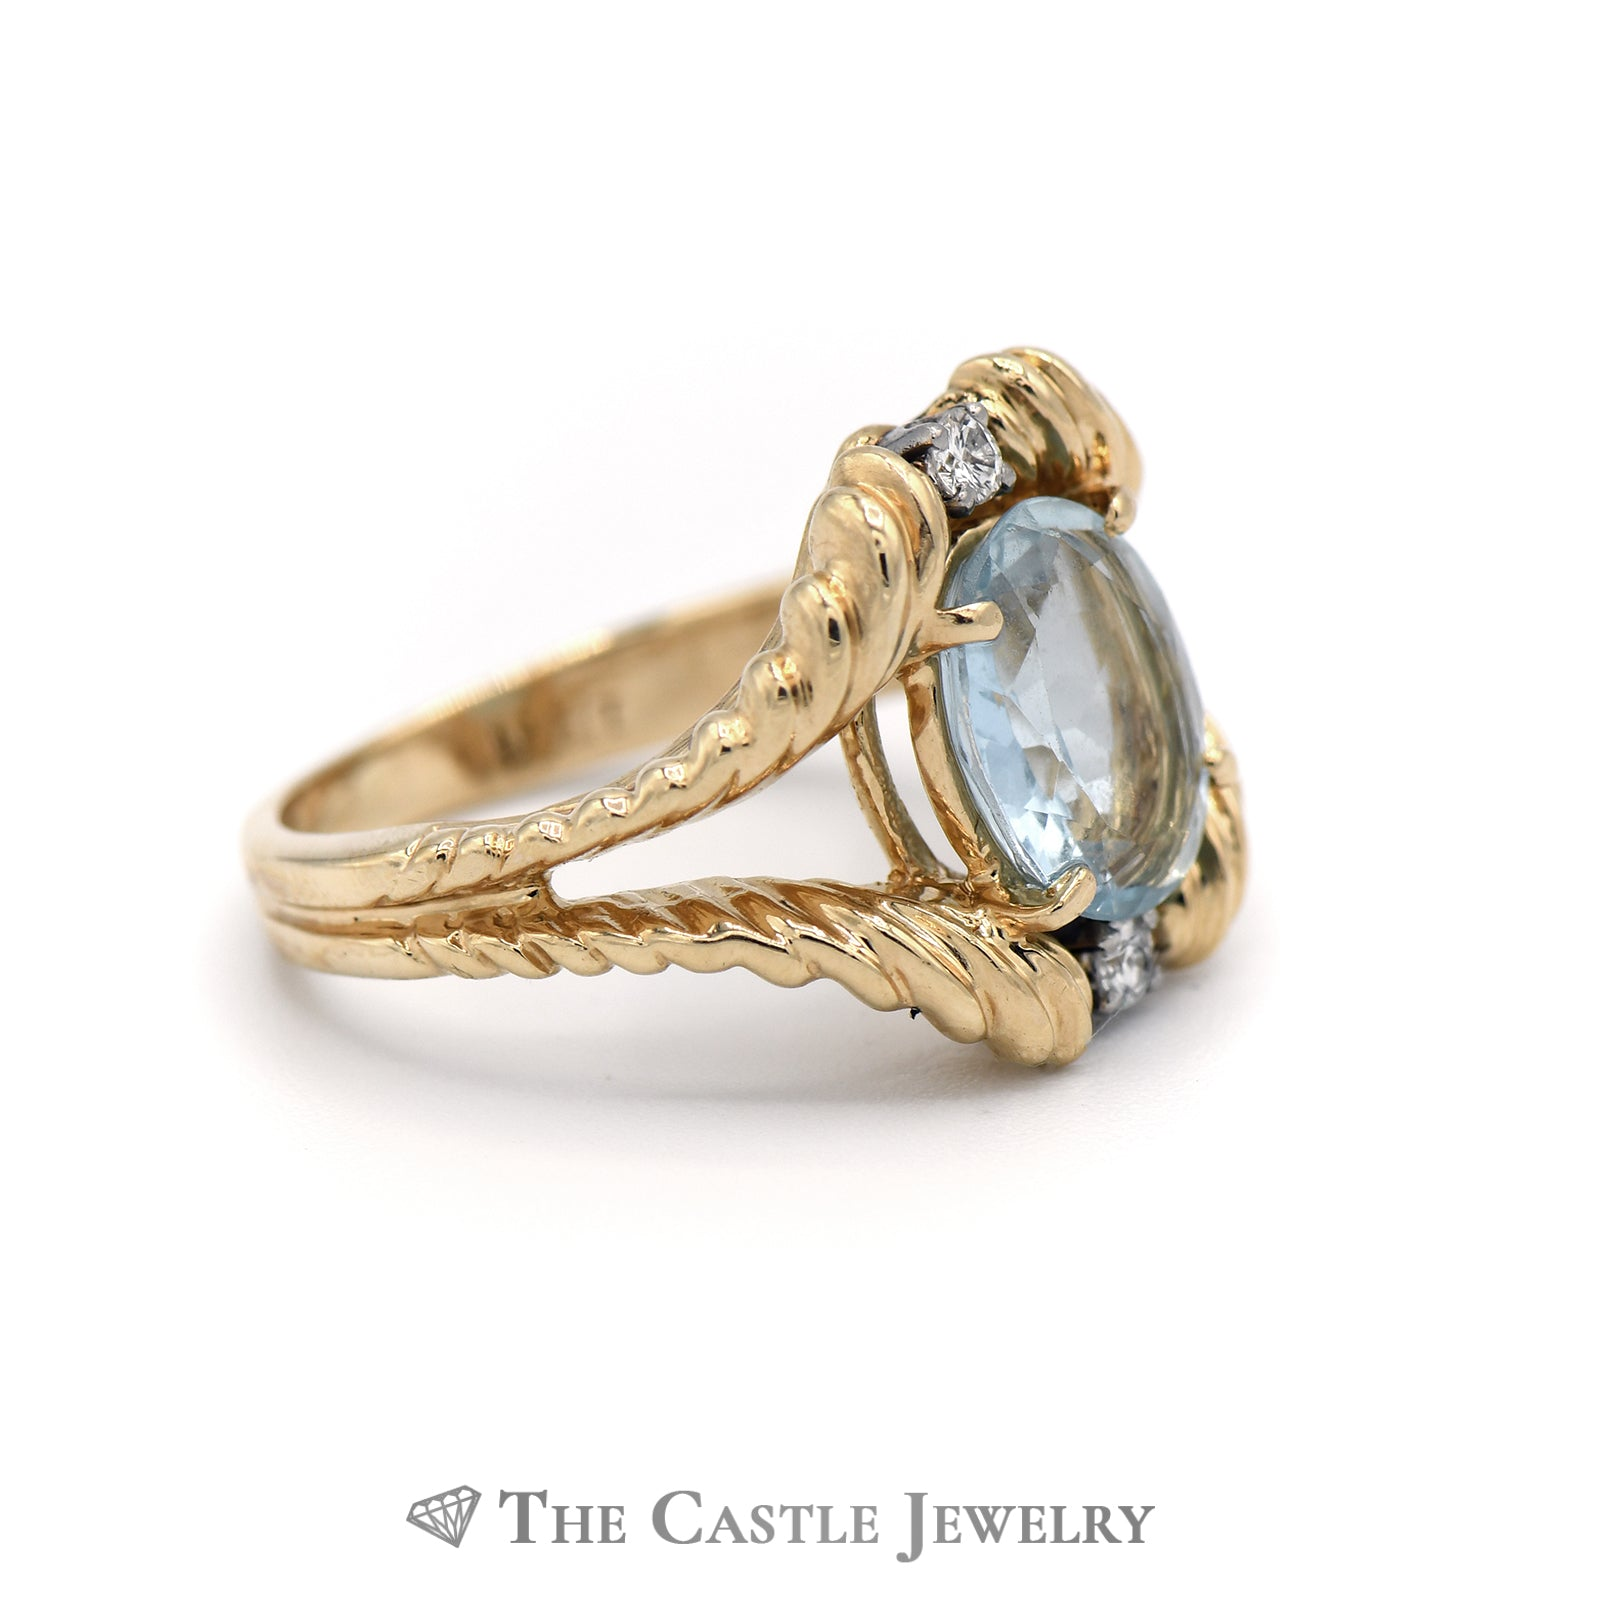 Oval Aquamarine Ring with San Marco Split Shank Mount in 14K Yellow Gold-2